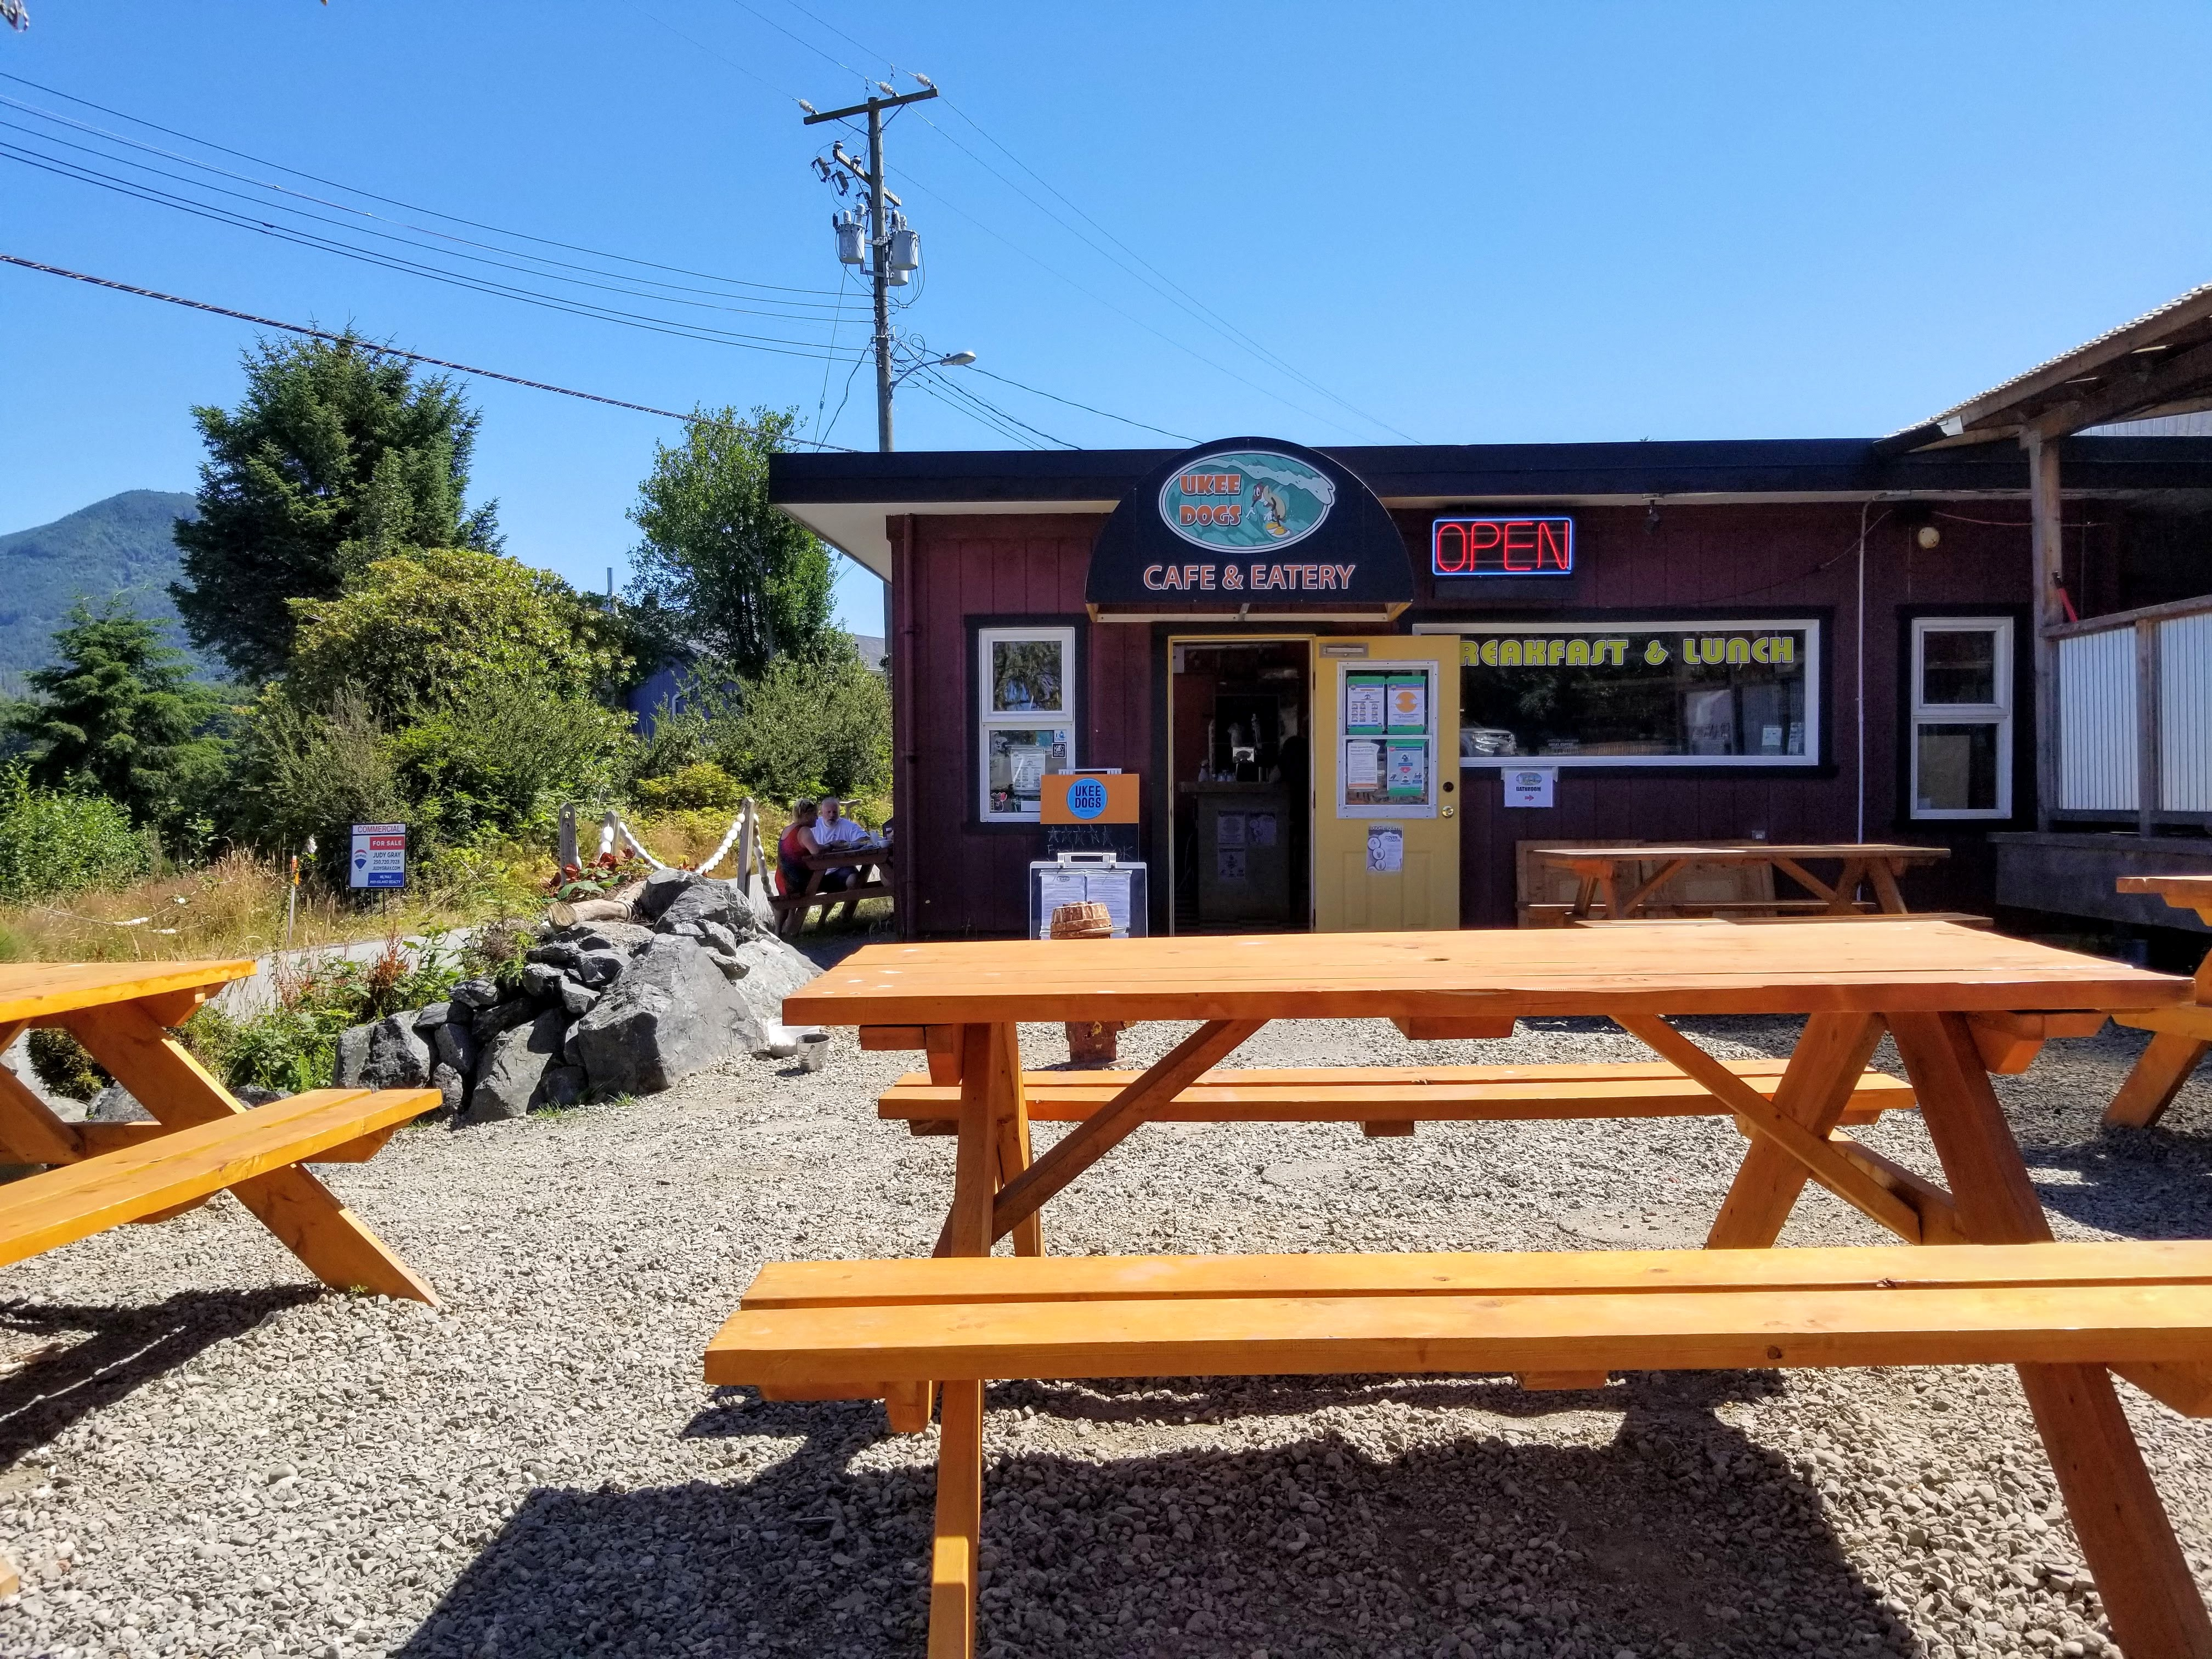 Ukee Dogs in Ucluelet: an ecclectic and fun place to get hot dogs